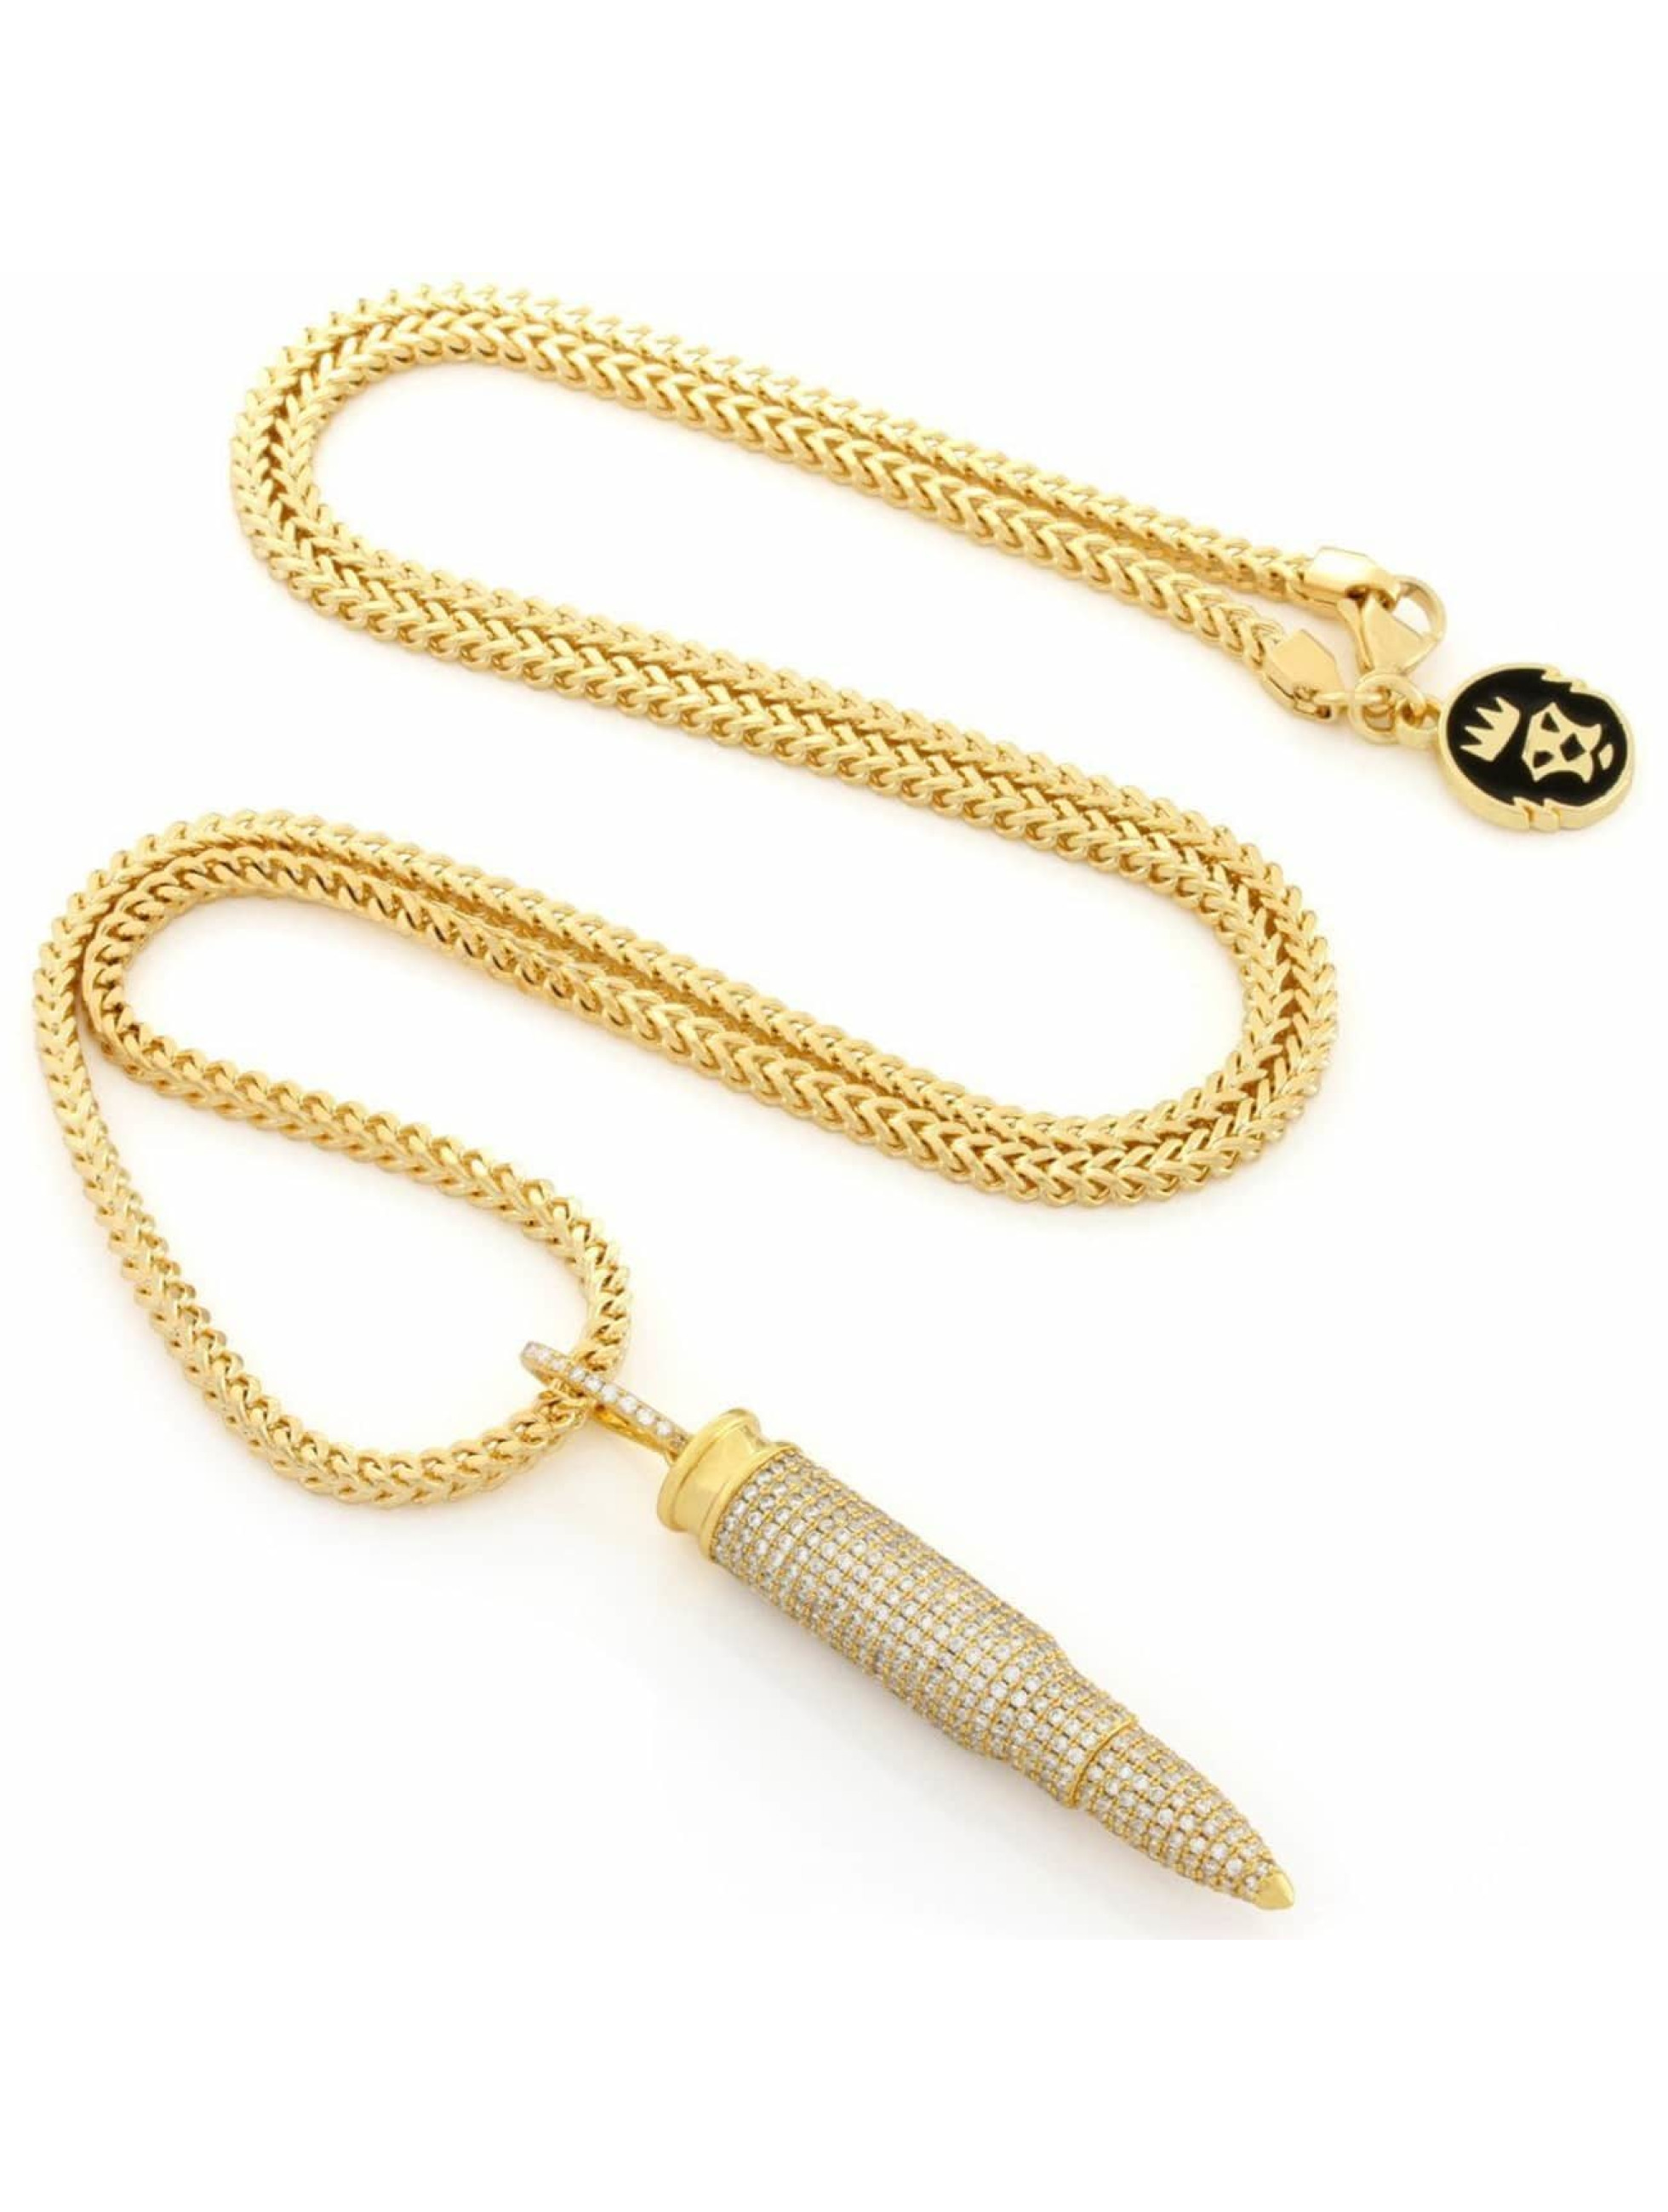 KING ICE Kette Gold_Plated CZ 223 Caliber Bullet goldfarben